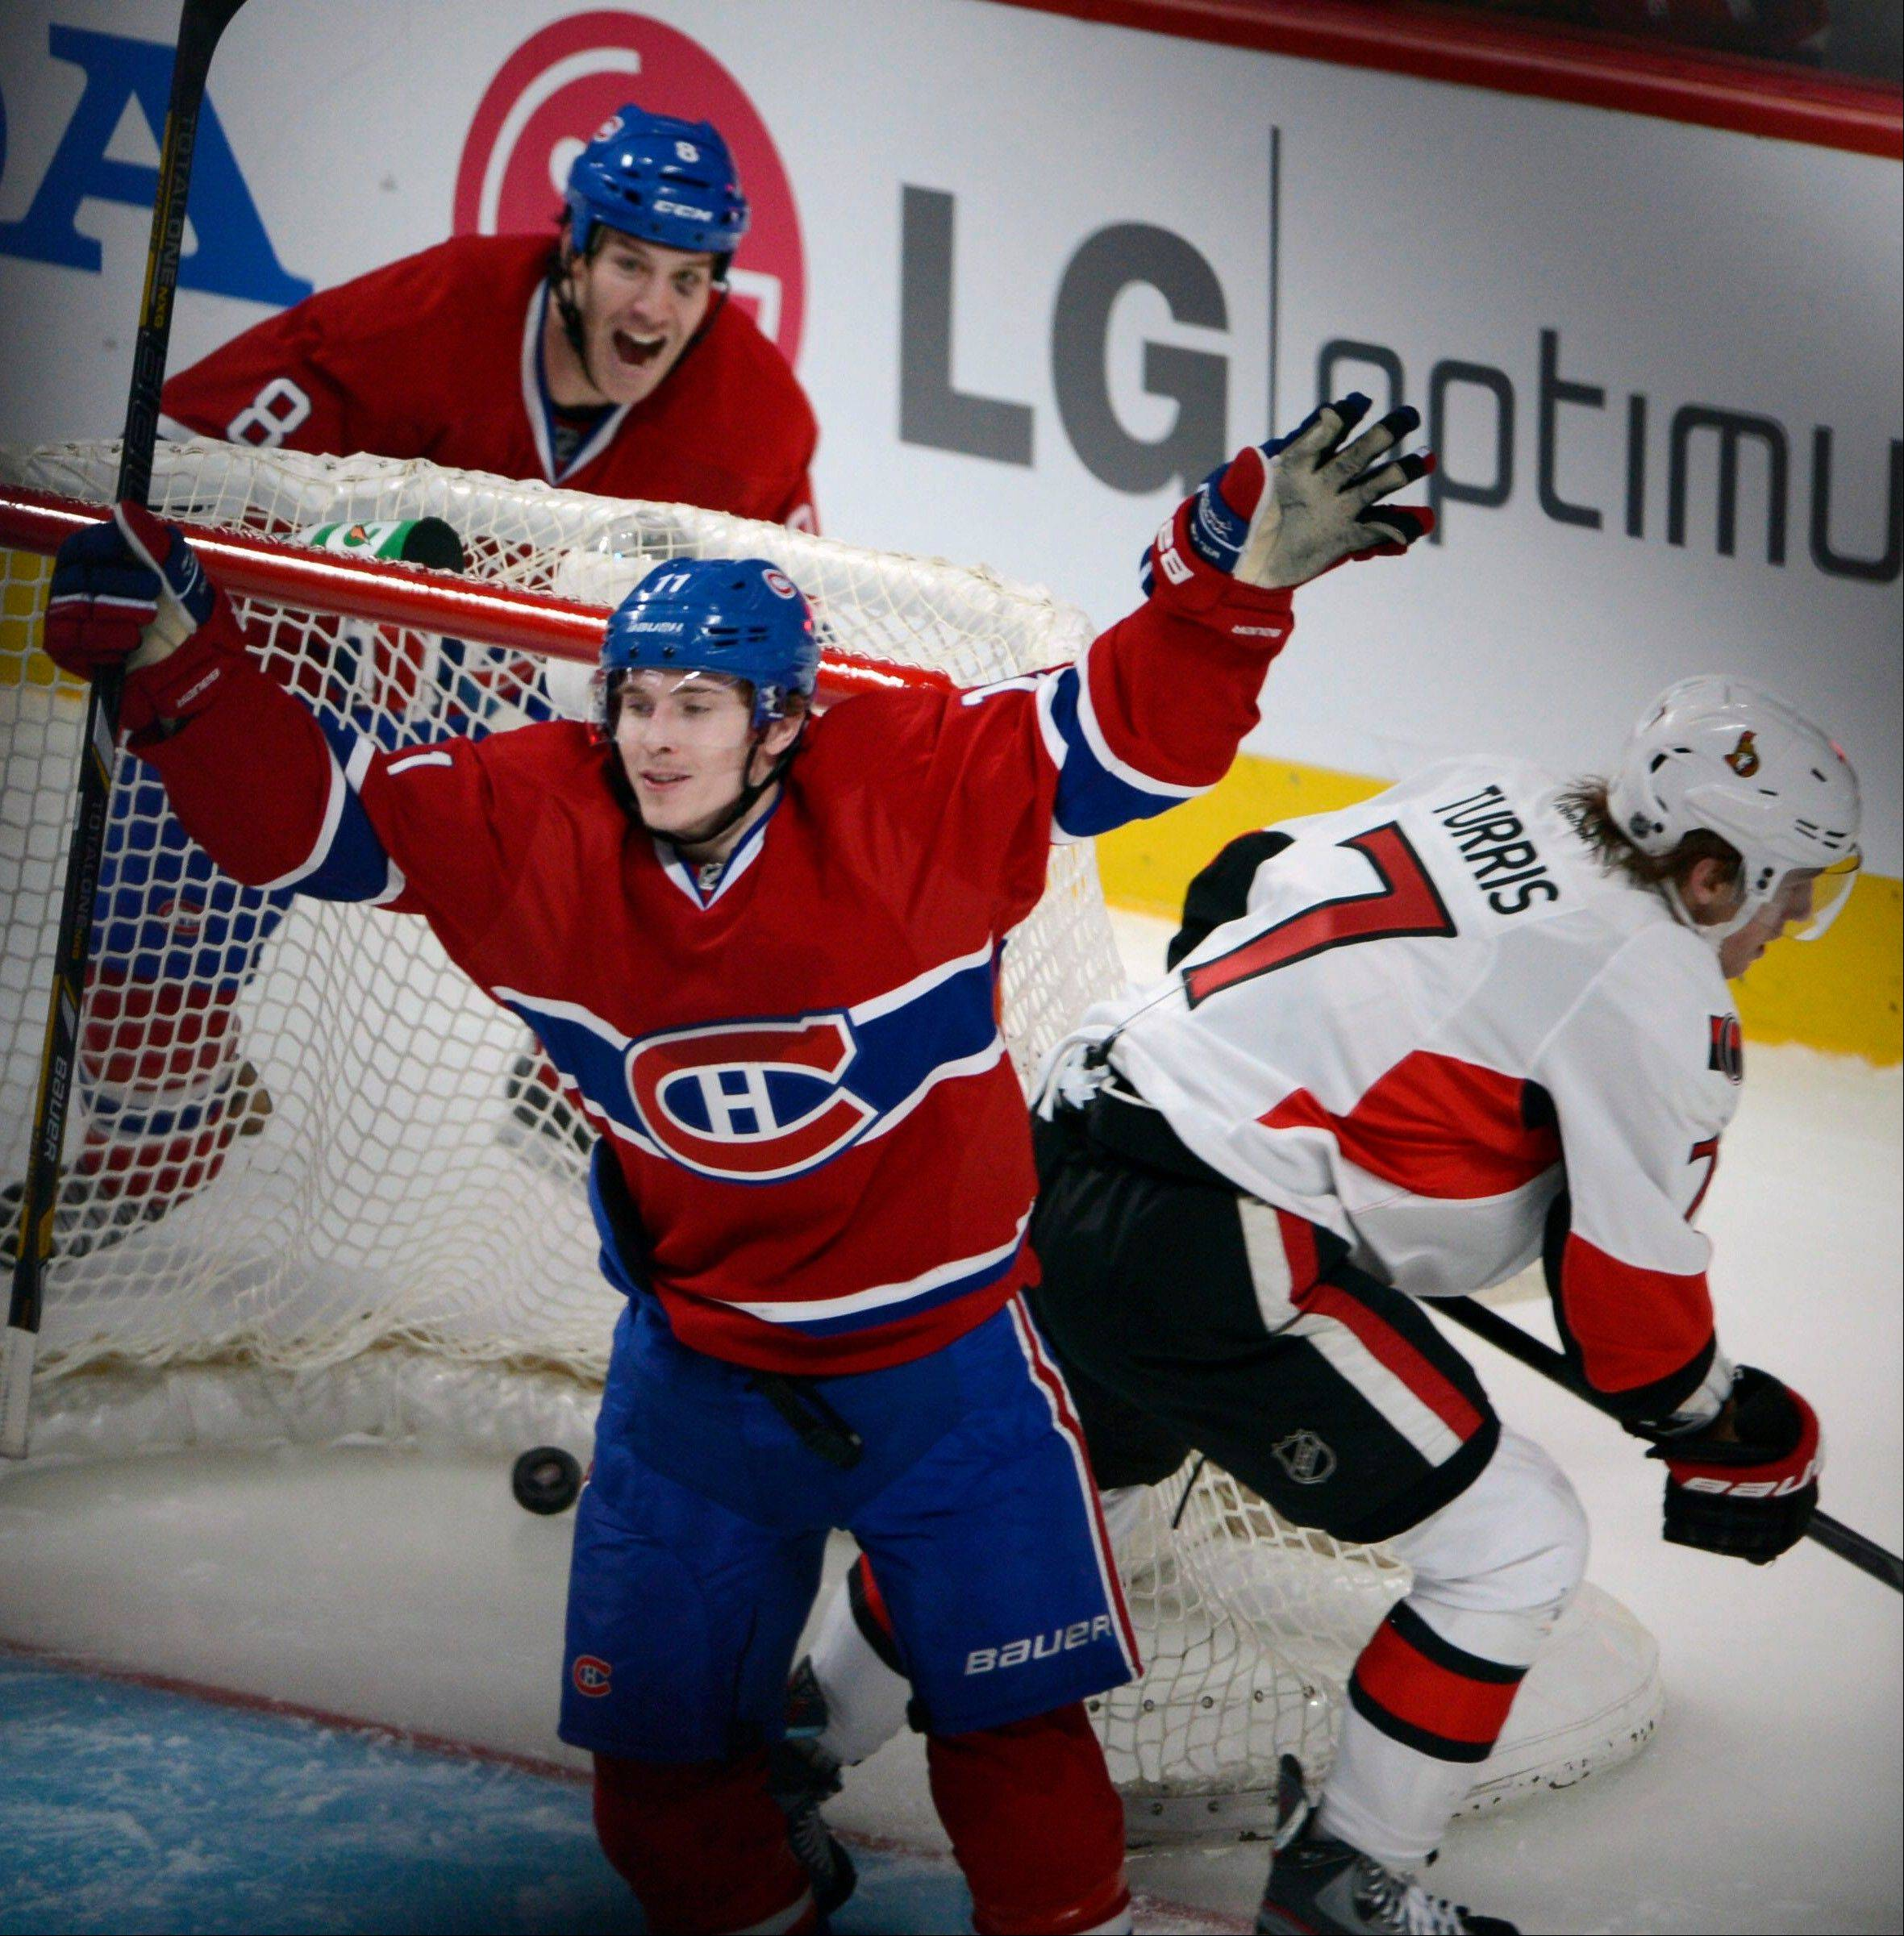 Montreal Canadiens forward Brendan Gallagher celebrates scoring as teammate Brandon Prust (8) and Ottawa Senators forward Kyle Turris (7) look on during second-period NHL hockey Game 2 first-round playoff action in Montreal, Friday, May 3, 2013.